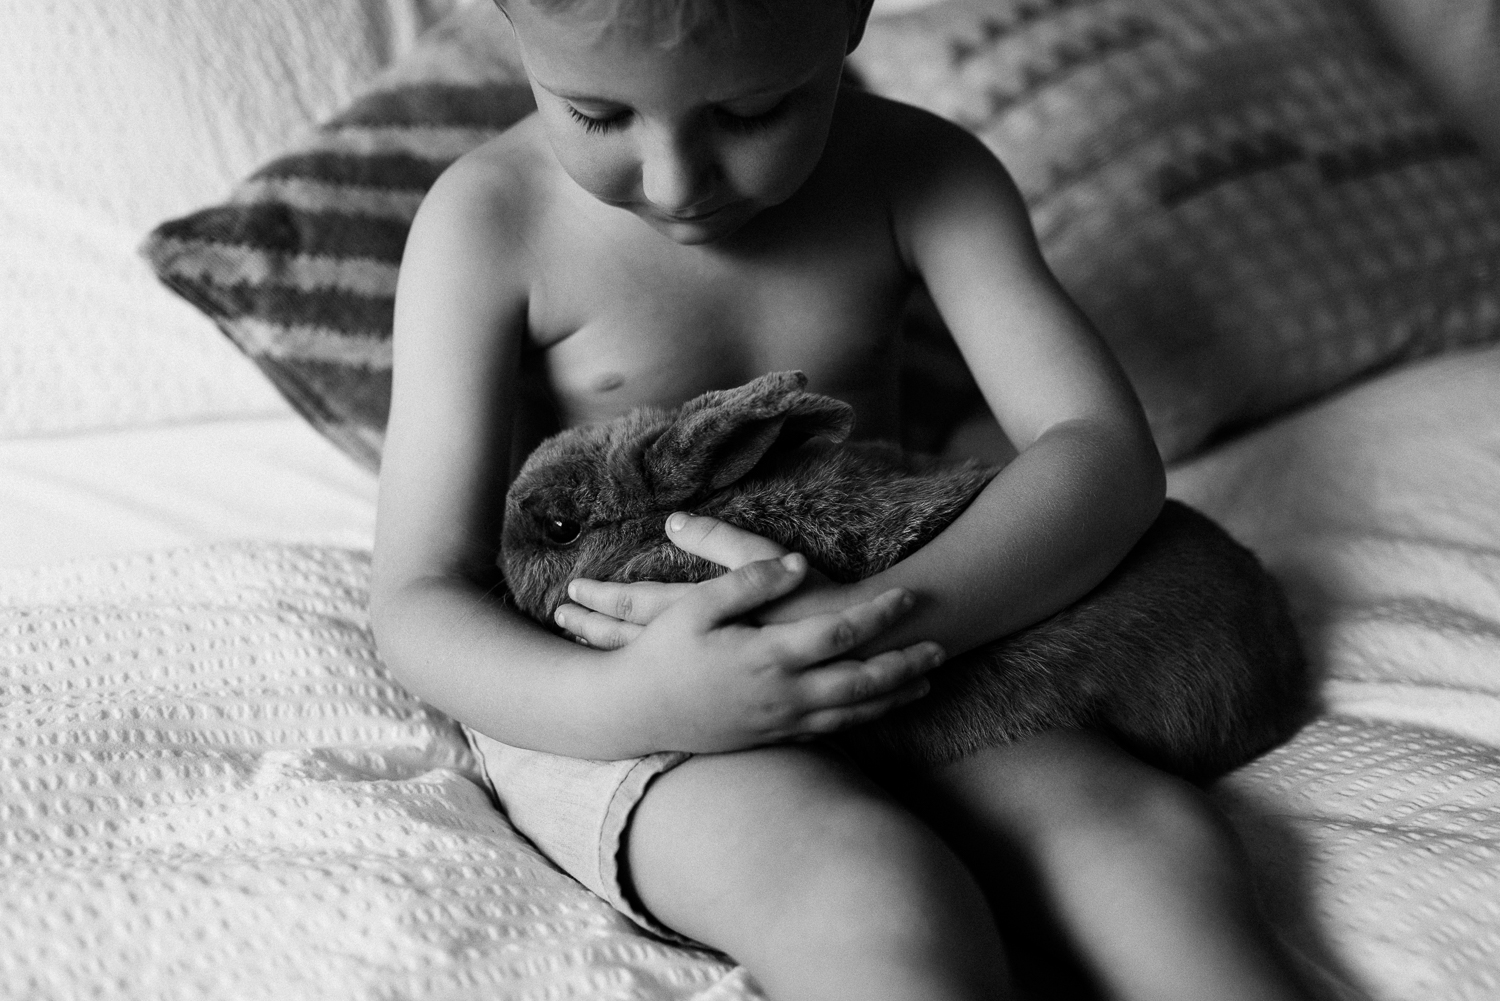 black and white image of young boy sitting on bed cuddling with pet rabbit